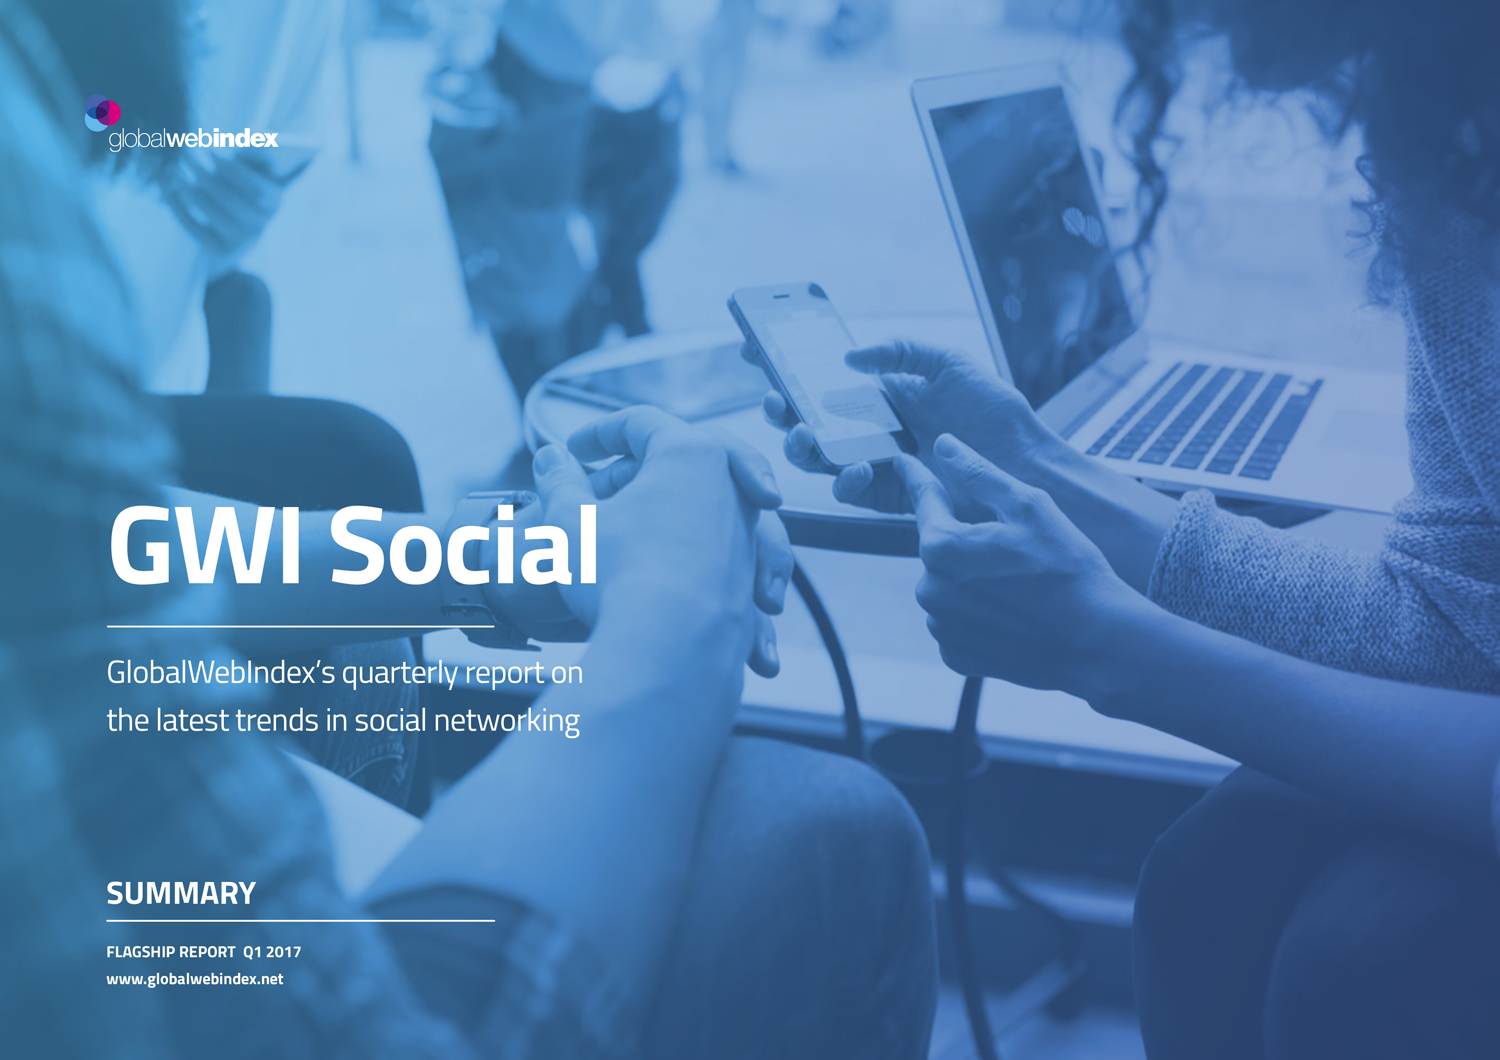 GWI Social Summary Report - Preview 1